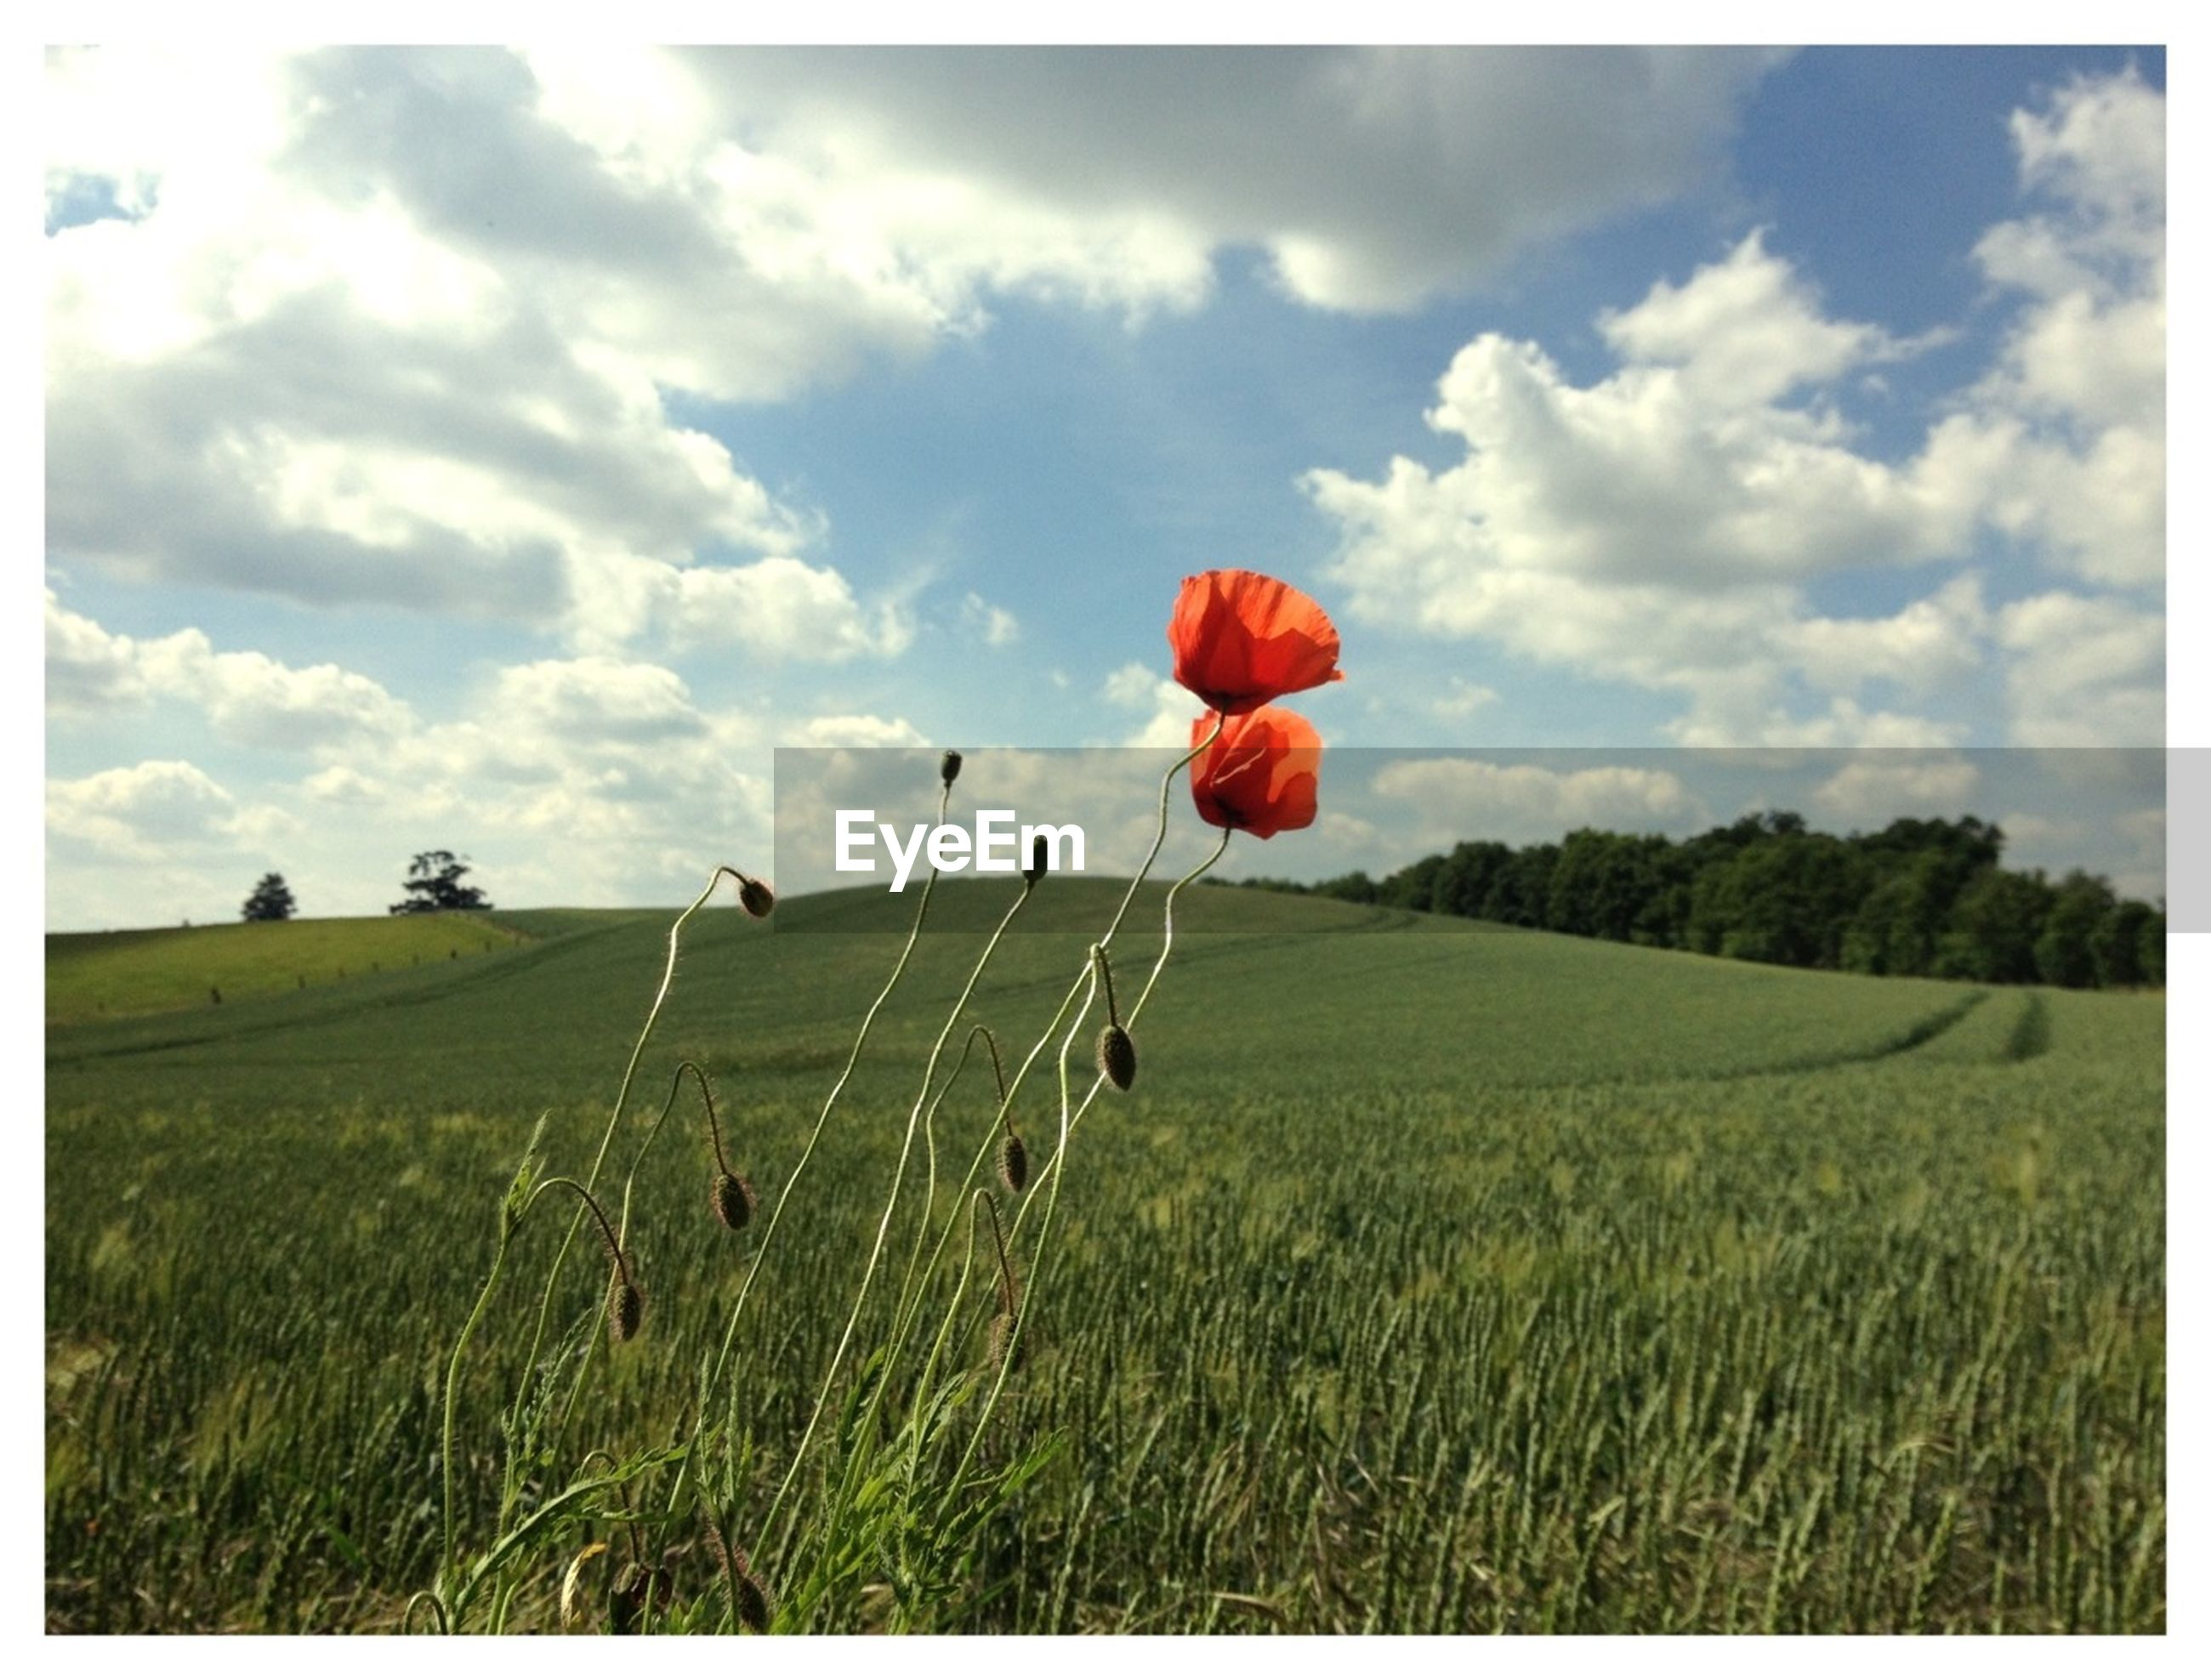 Red poppies blooming on grassy field against cloudy sky